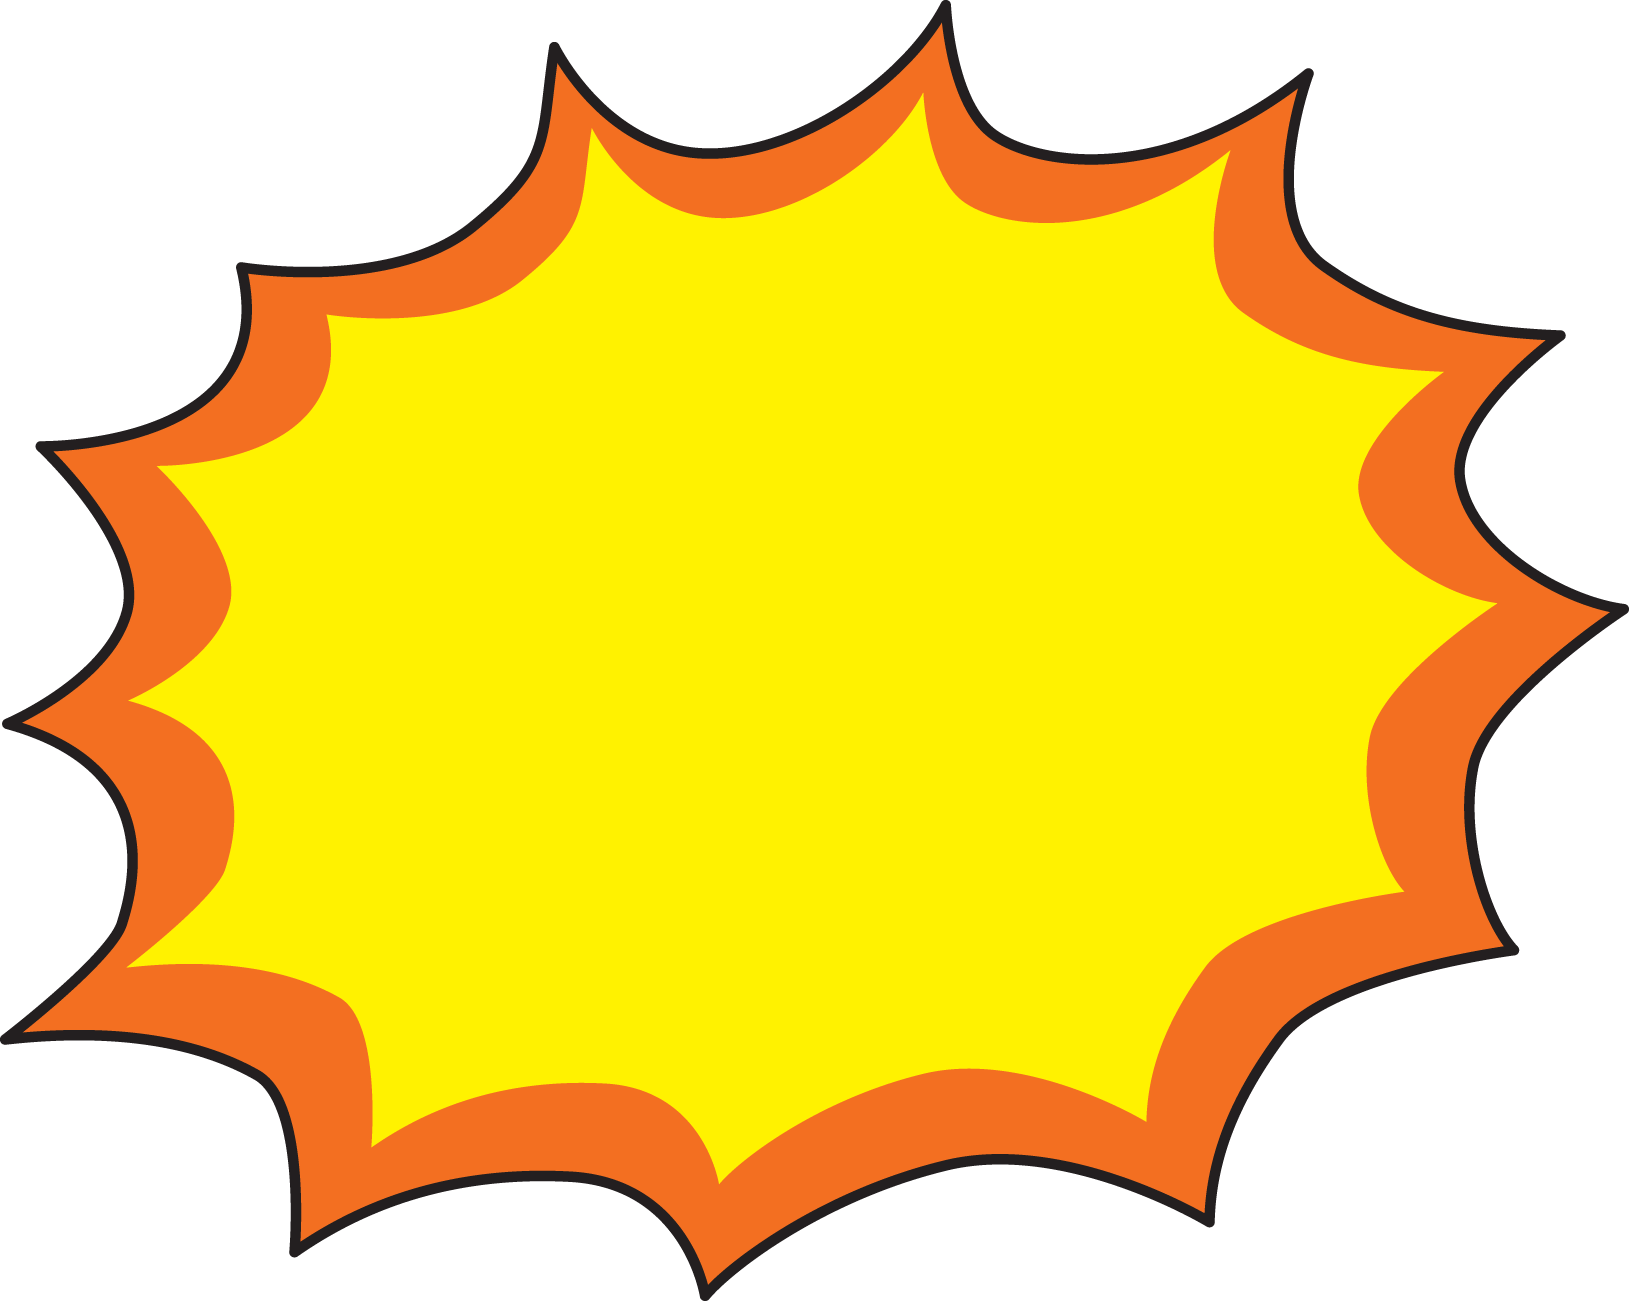 Explosion Clipart - Clipart Kid